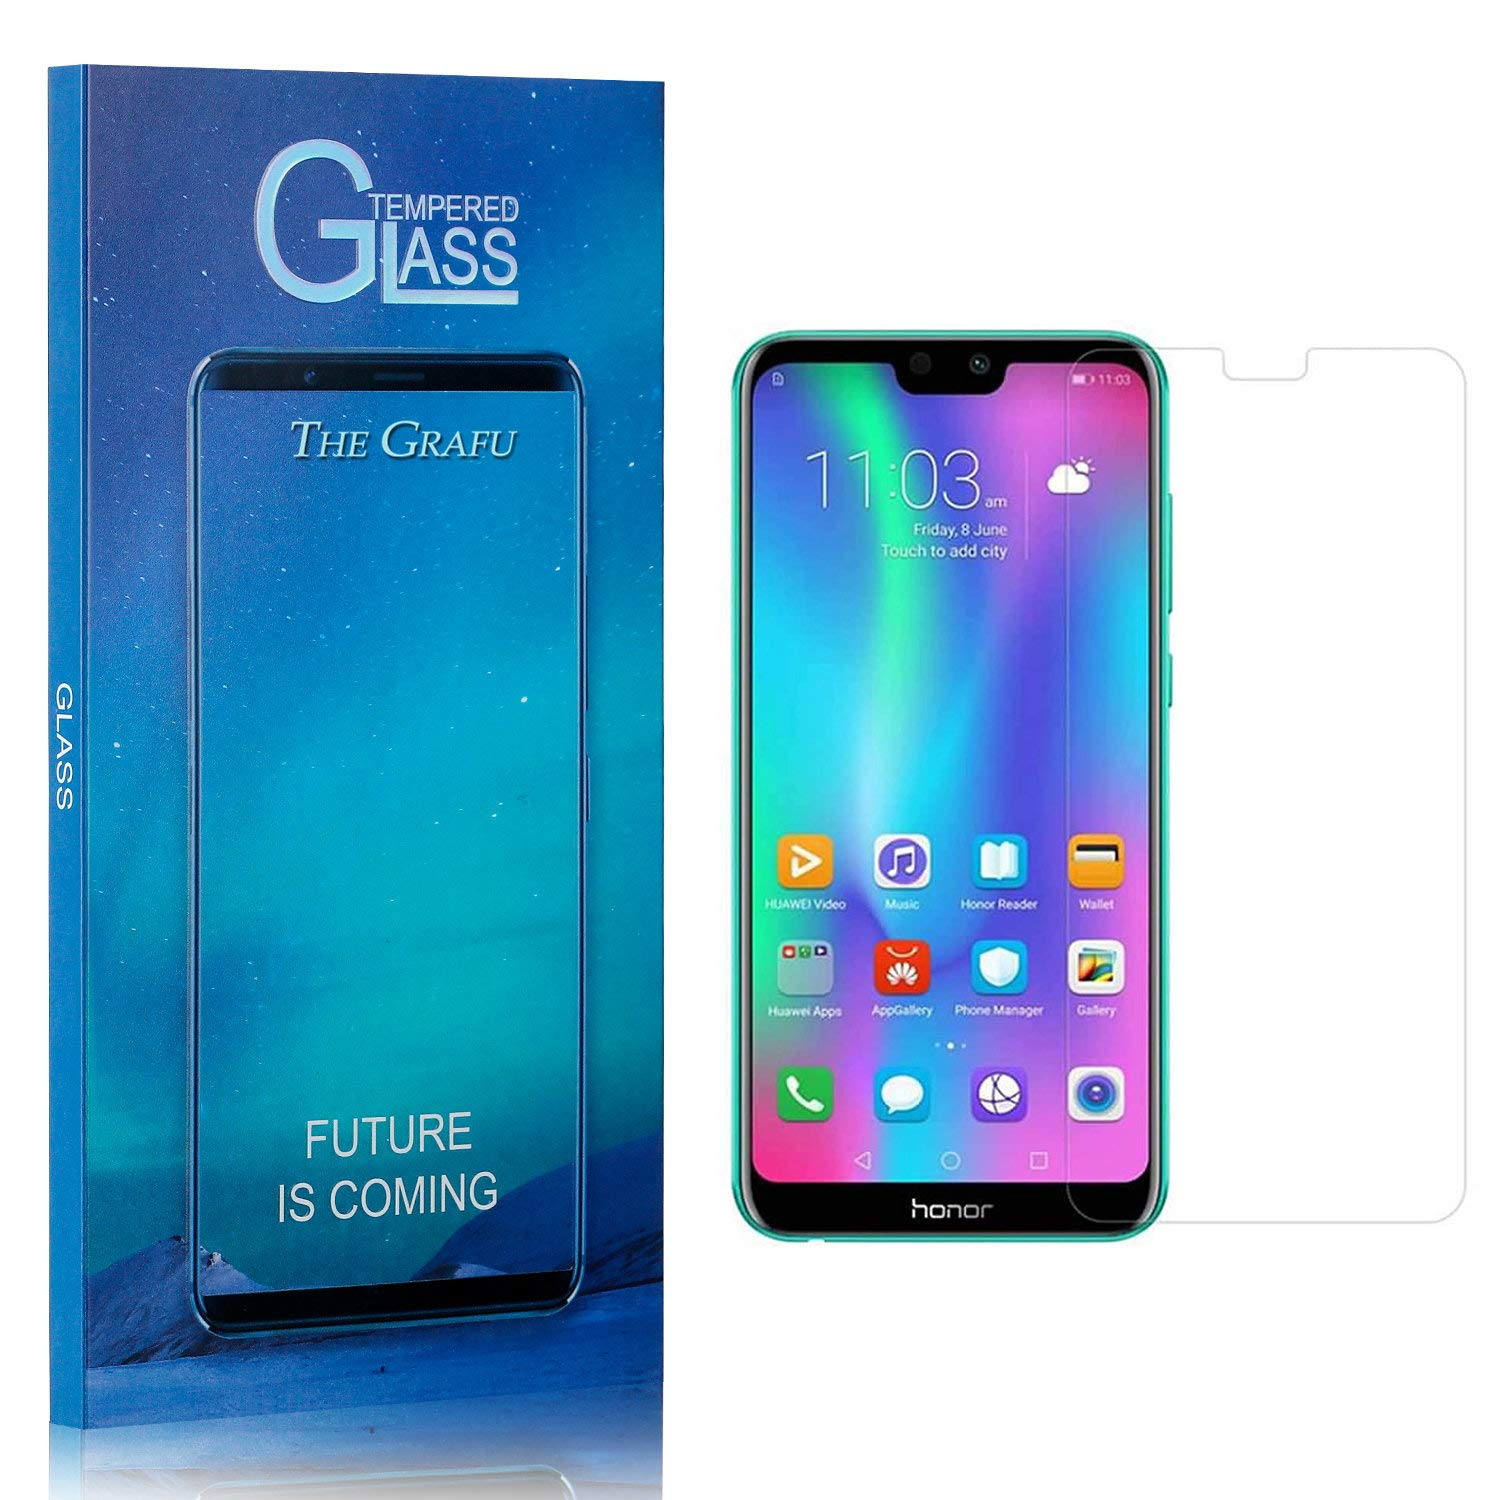 Screen Protector Compatible with Huawei Honor 9I, The Grafu 9H Ultra Clear Tempered Glass Screen Protector for Huawei Honor 9I, Drop Fall Protection, 4 Pack